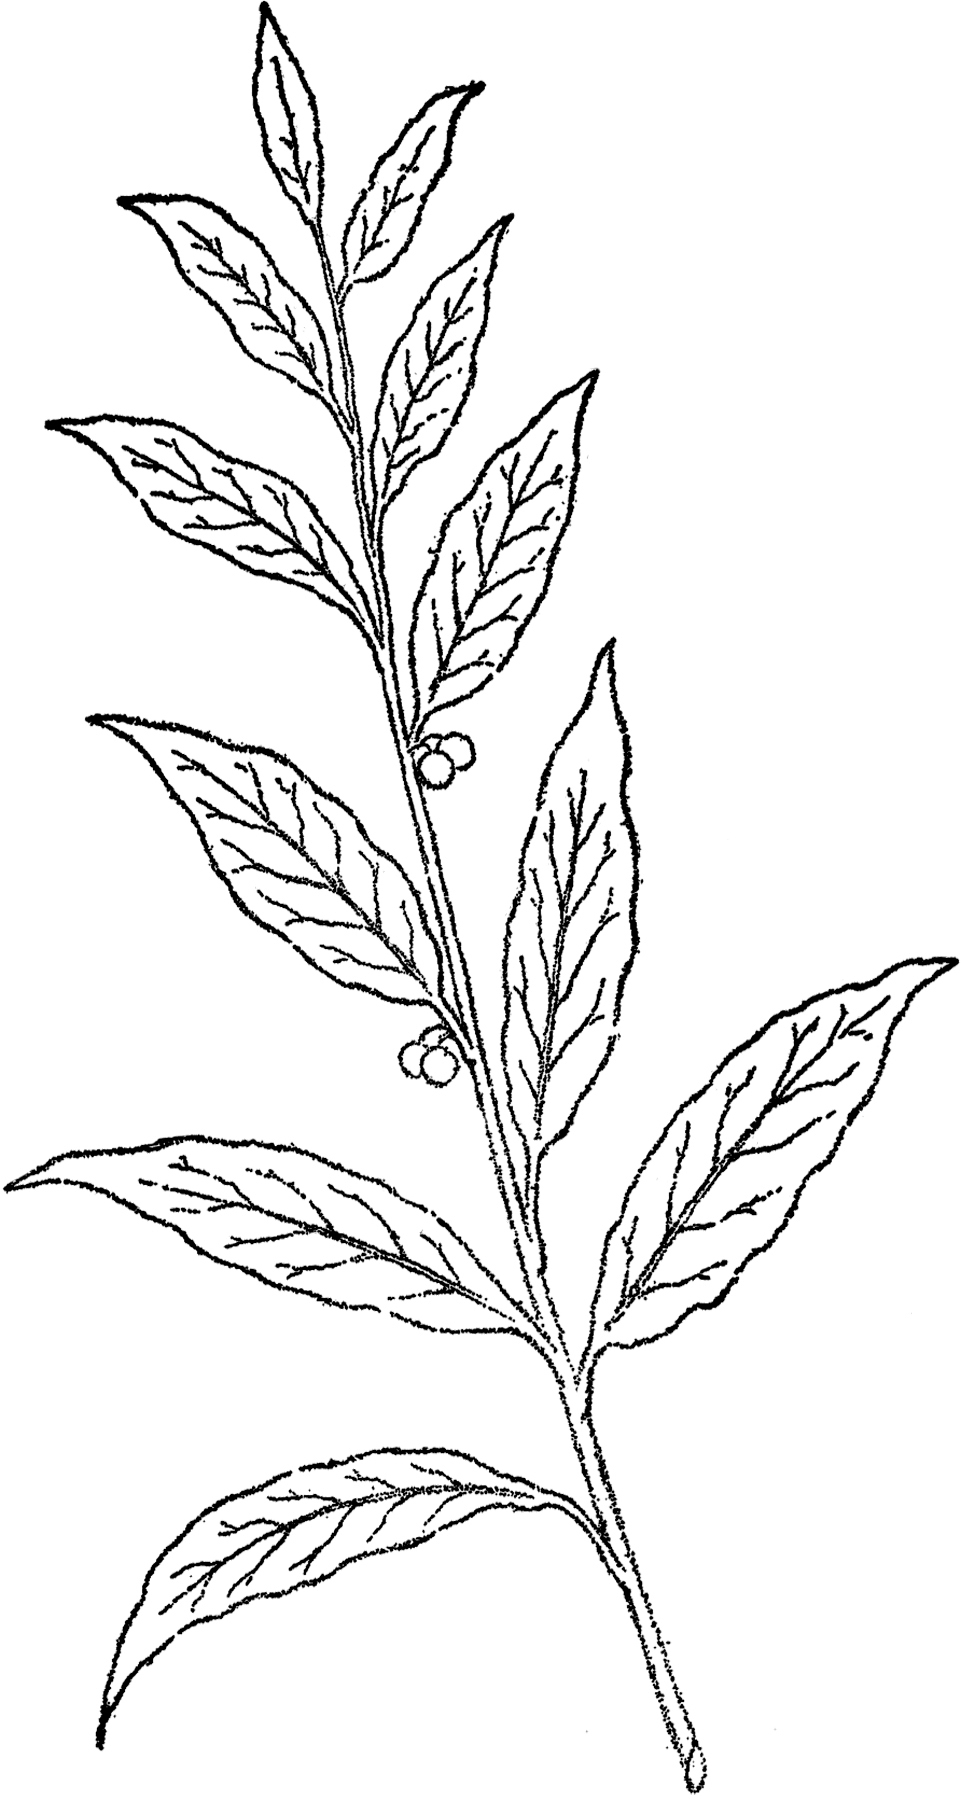 drawings of plants 1001 ideas and tutorials for easy flowers to draw pictures drawings plants of